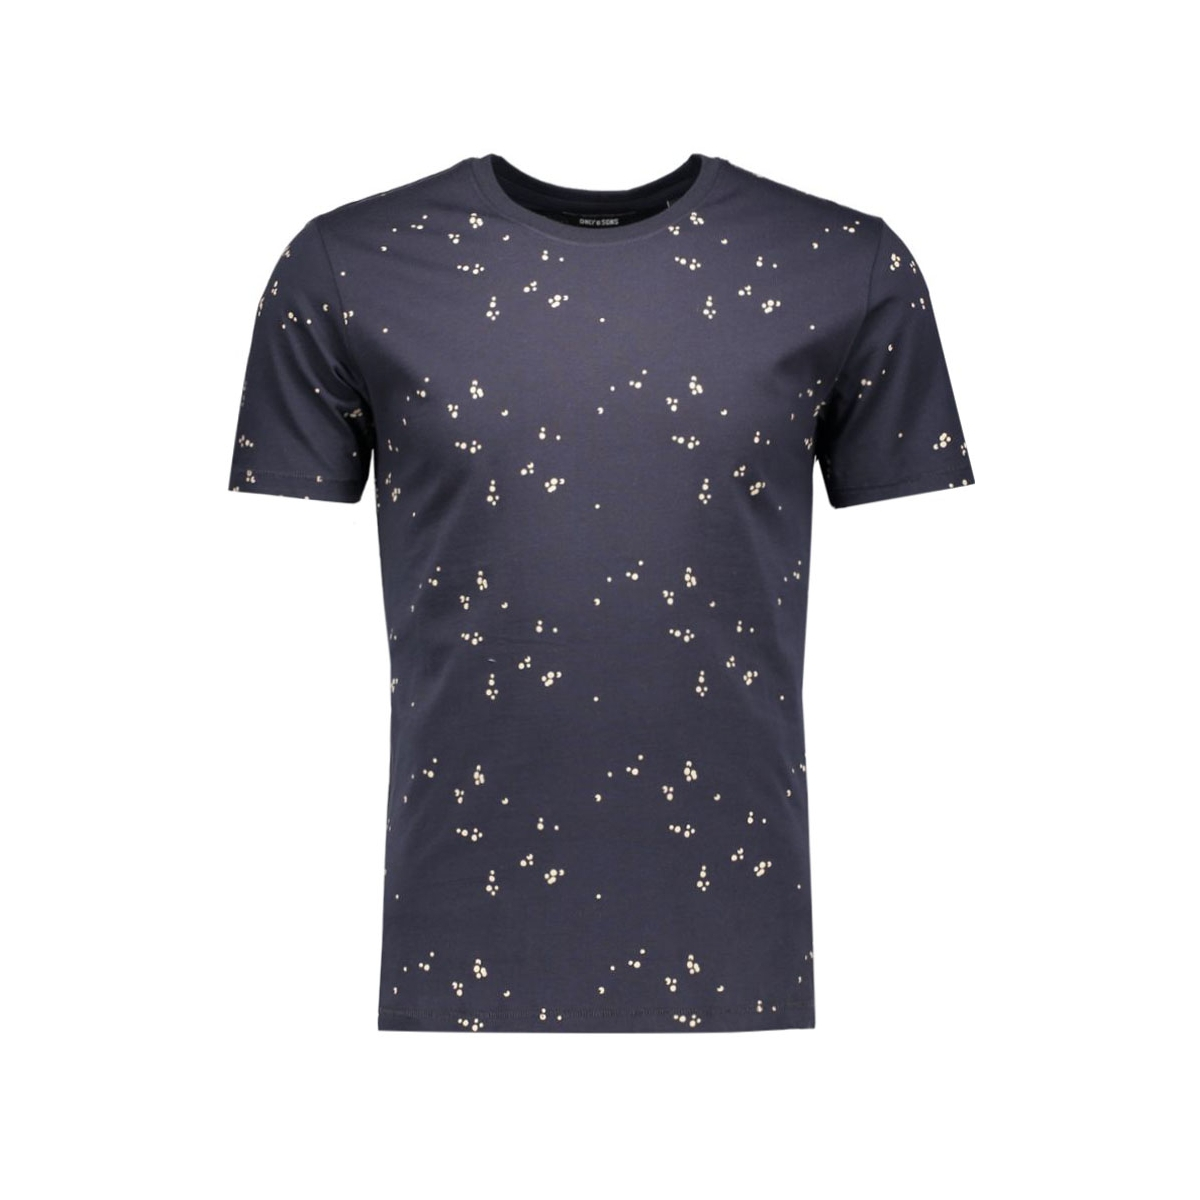 onsnader fitted aop tee 22004128 only & sons t-shirt dark navy